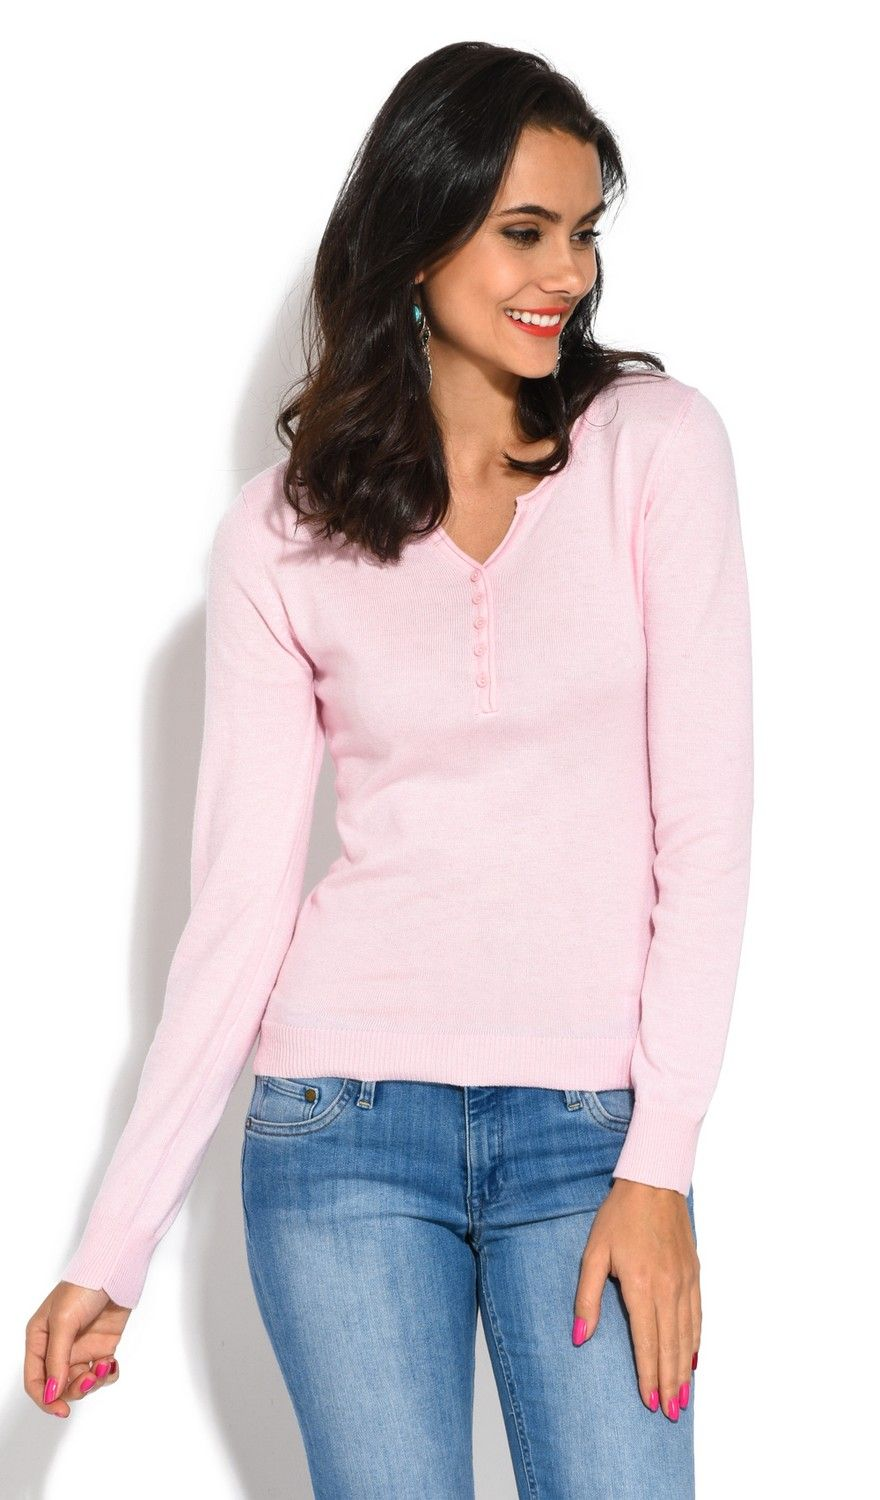 Assuili Tunisian Neck Sweater with Rolled Buttons in Pink